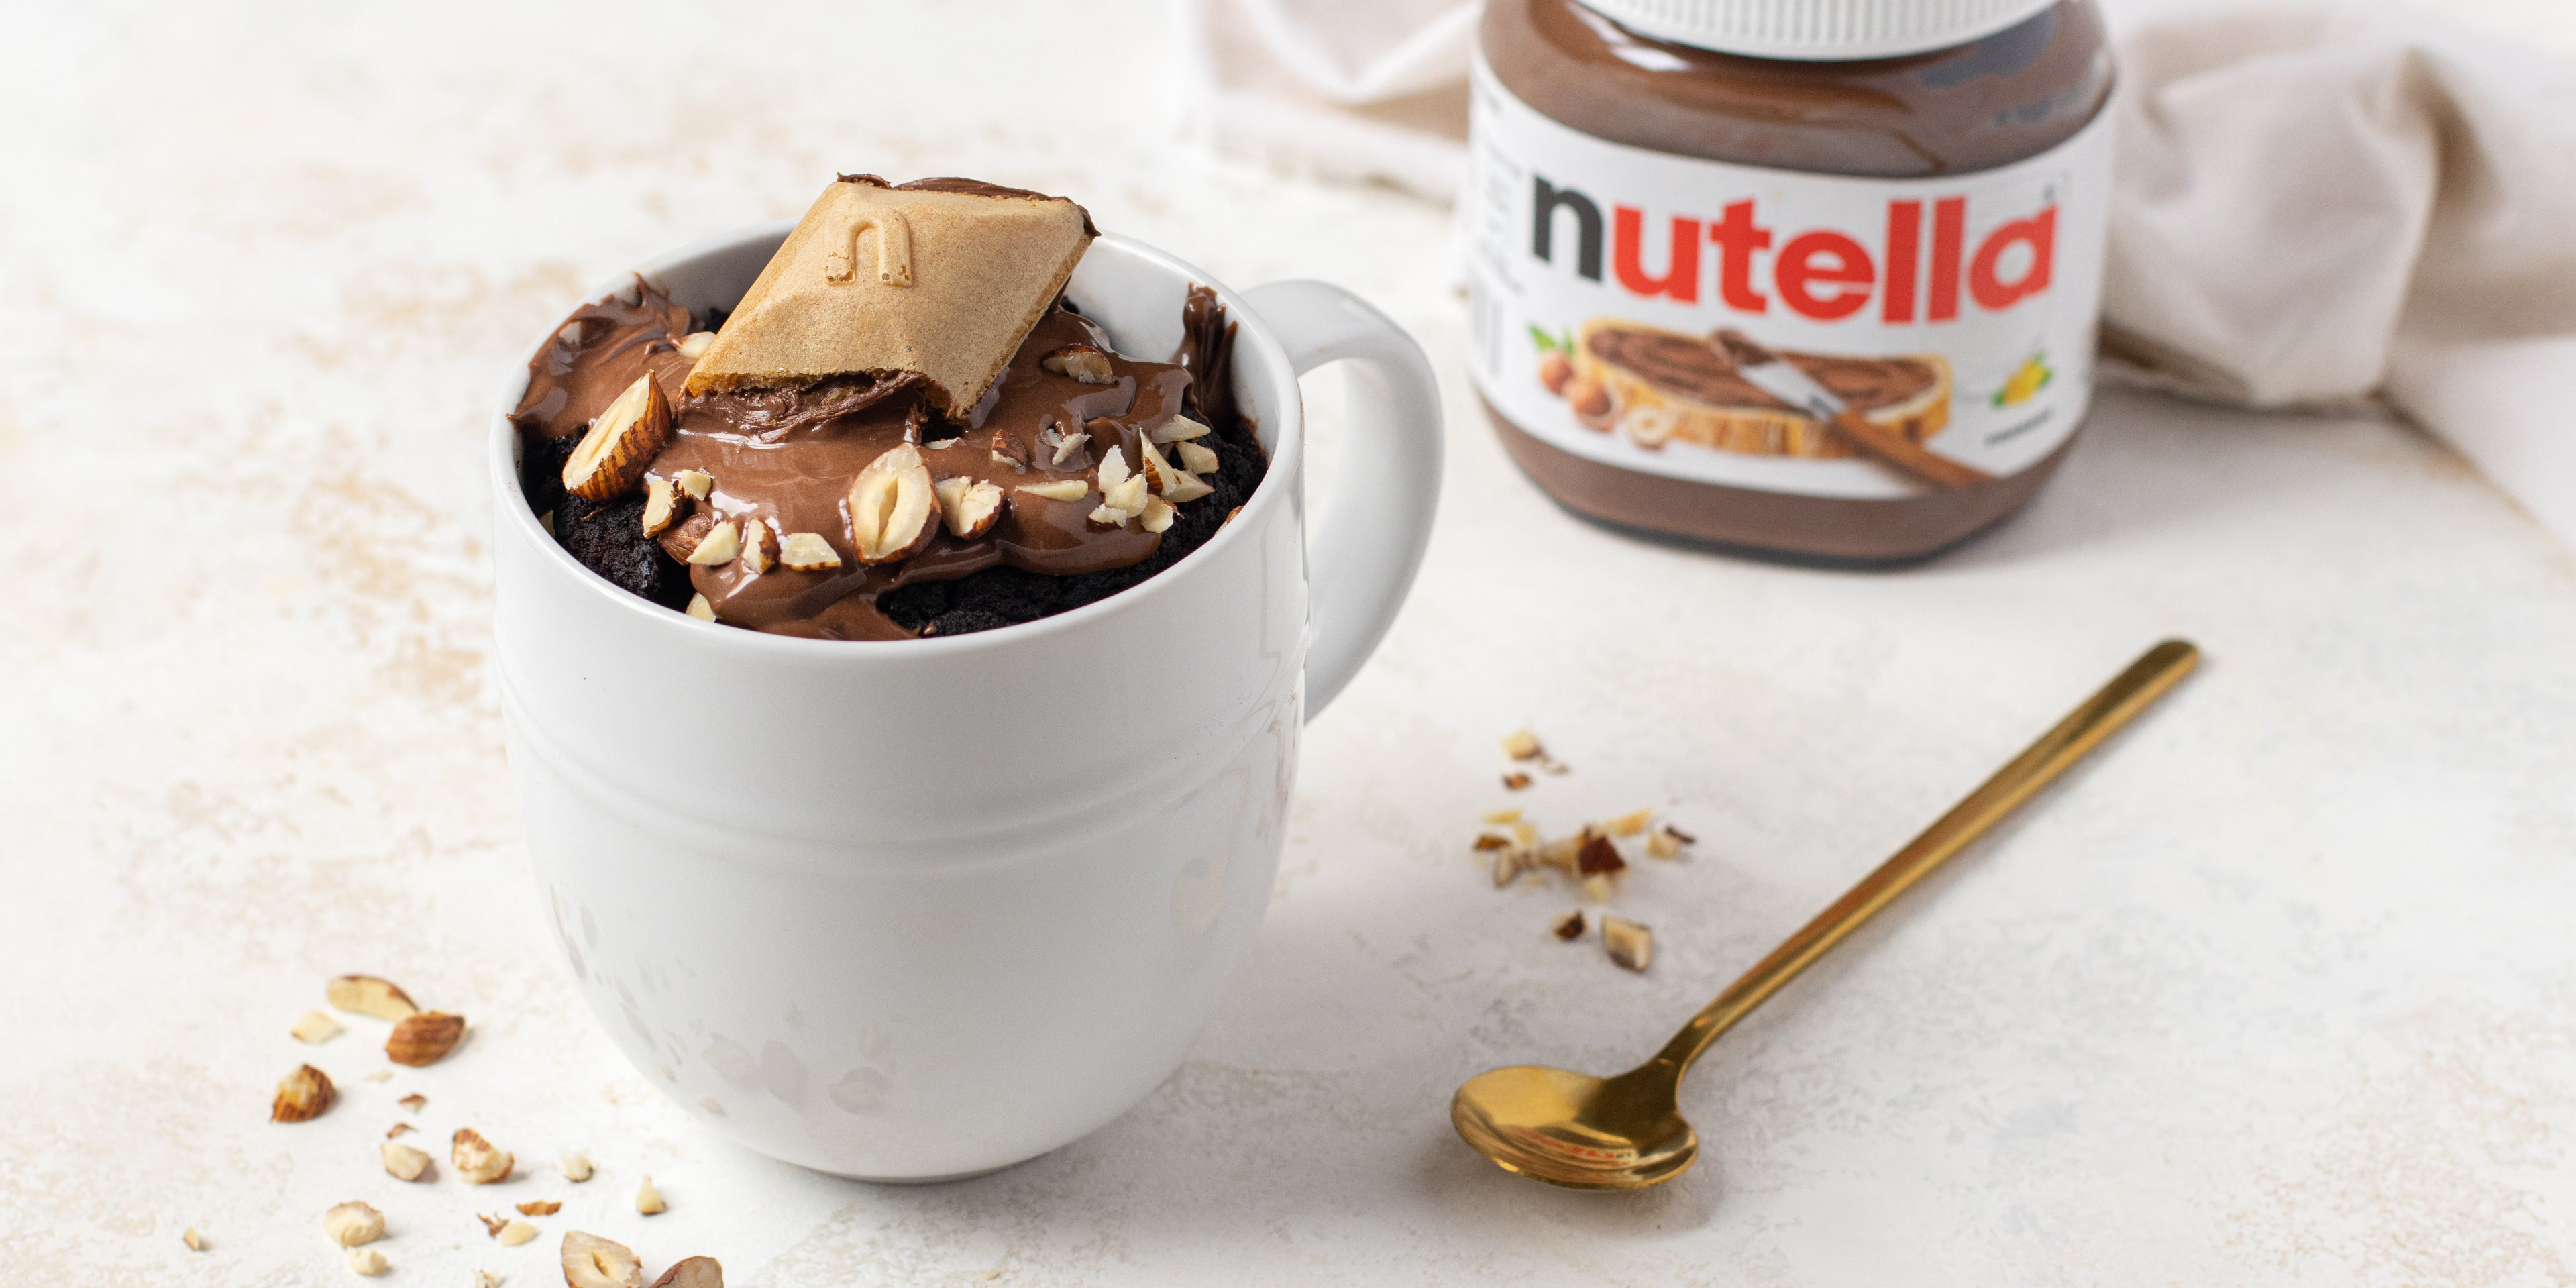 Chocolate Mug Cake customised with Nutella, with Nutella spread on top and sprinkled with hazelnuts. In the background there is a jar of Nutella next to a spoon